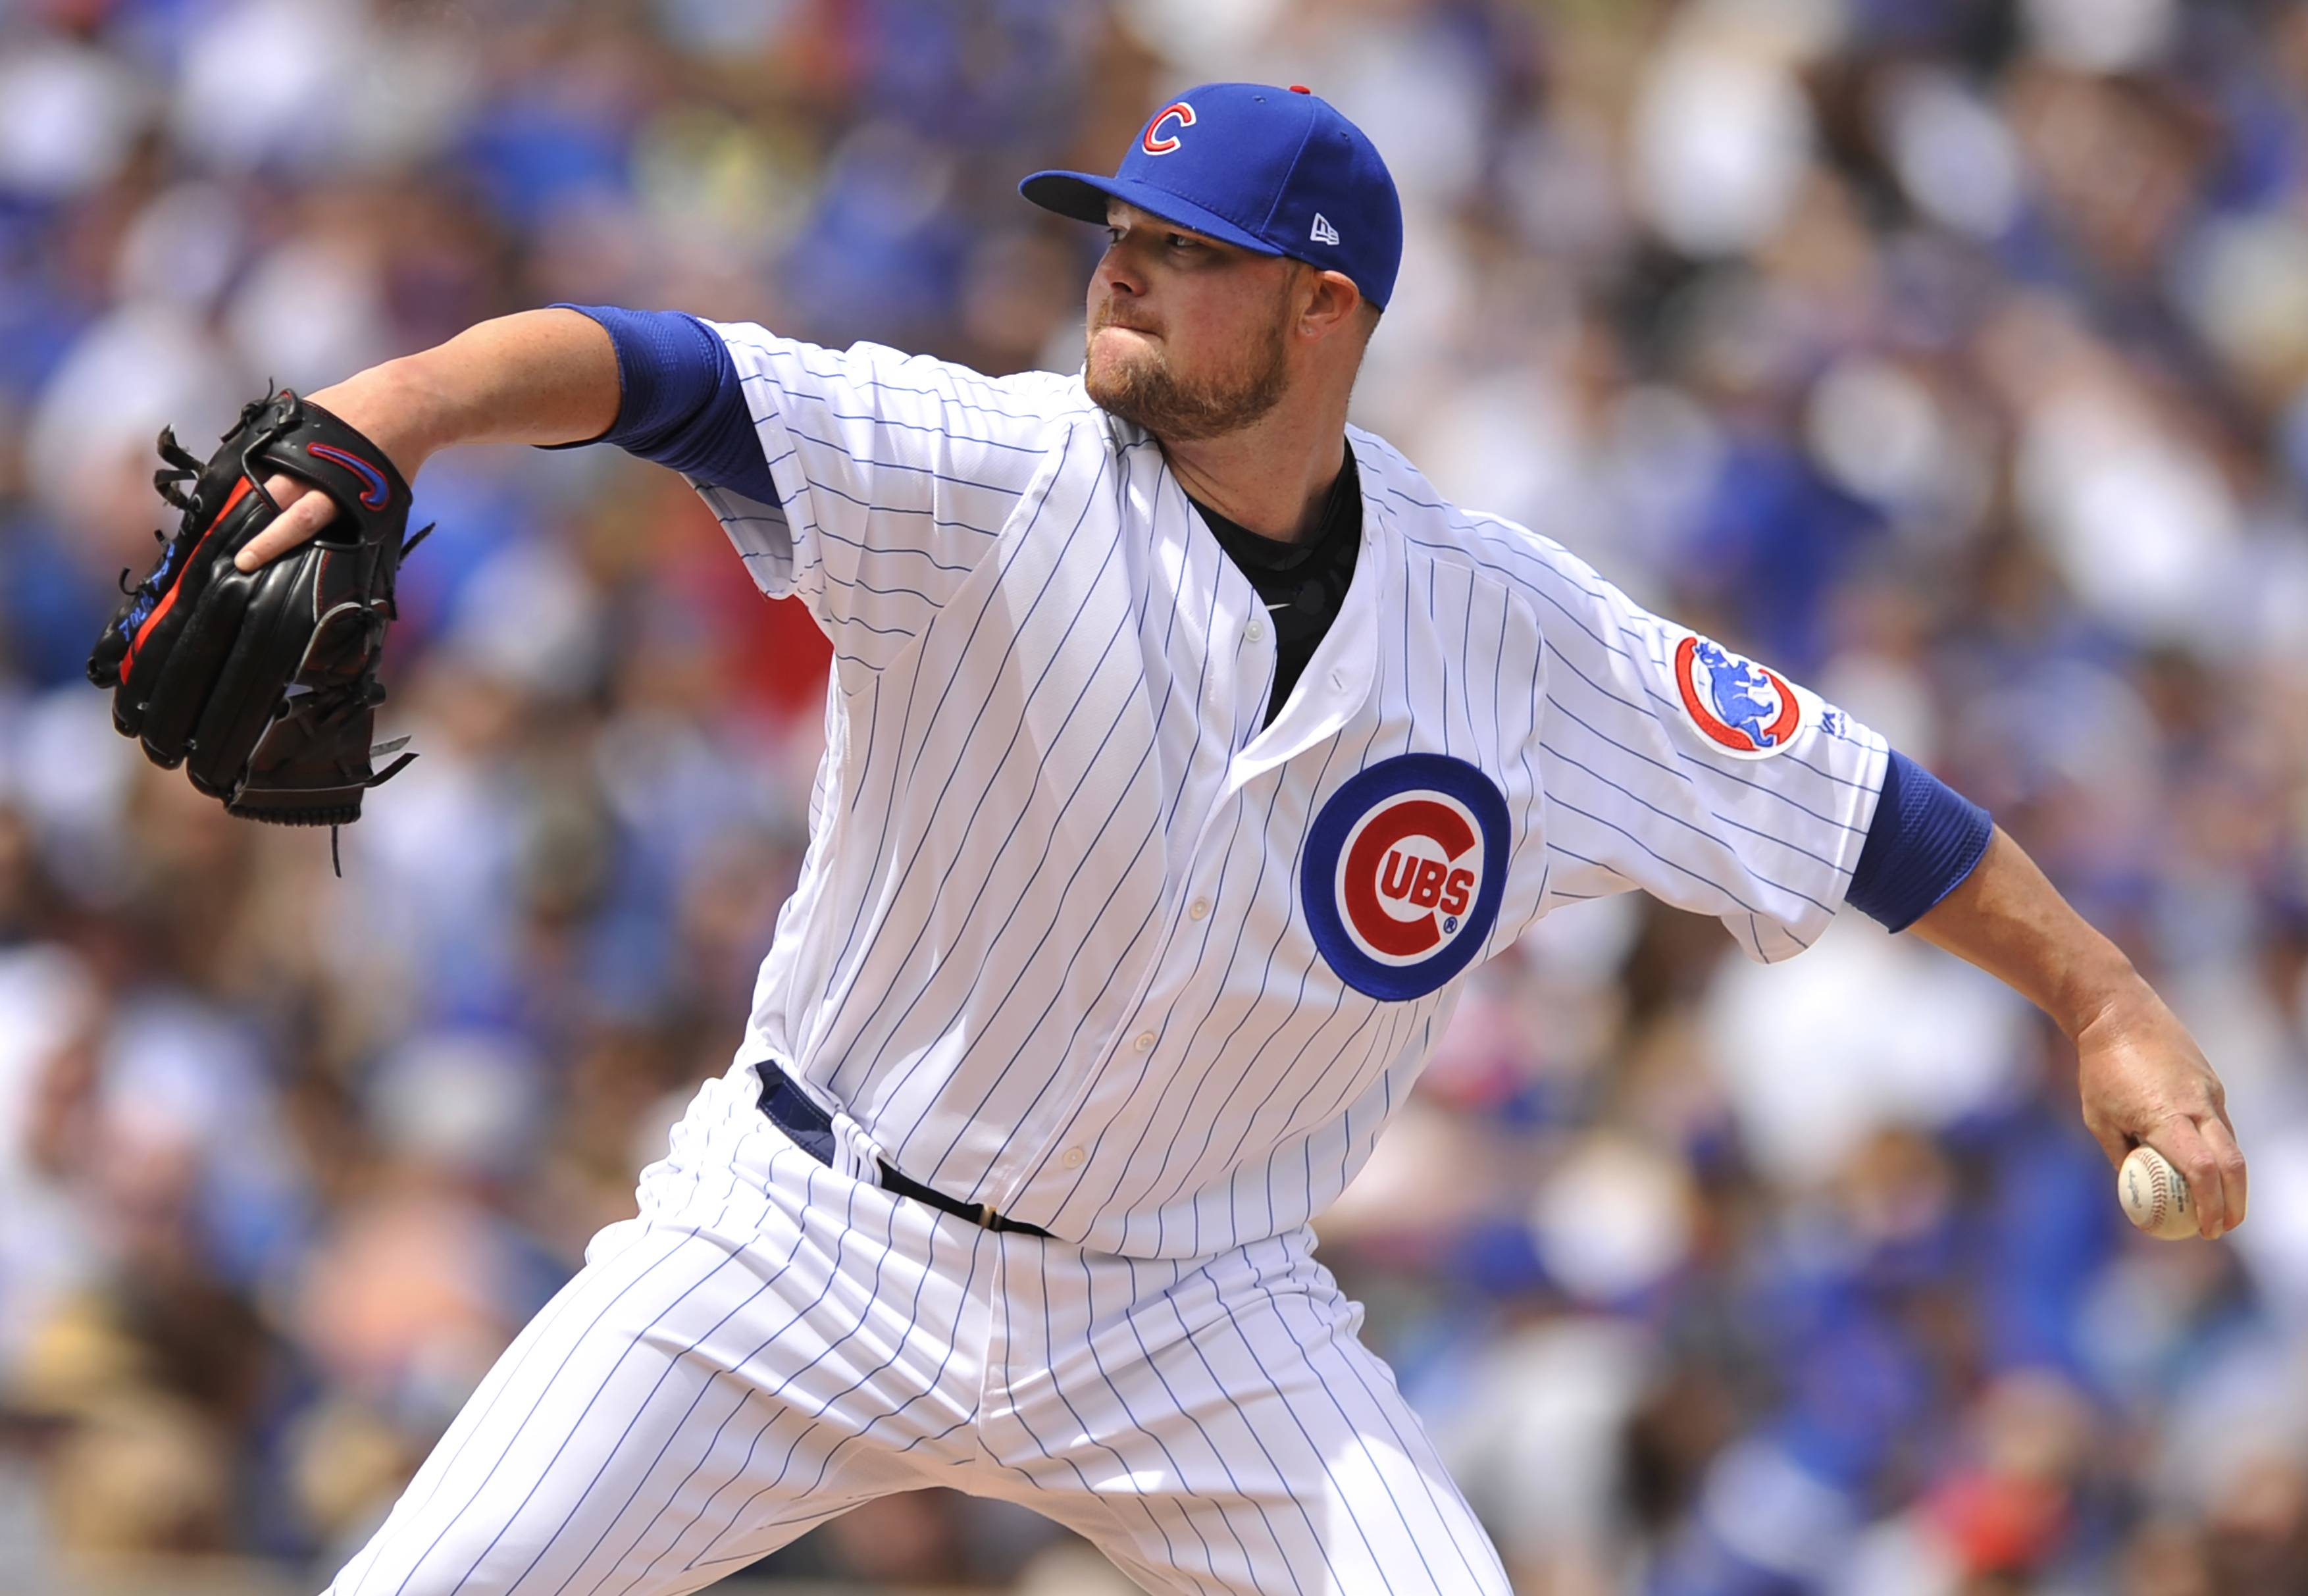 Cubs flip Lester, Arrieta starts in upcoming Reds series